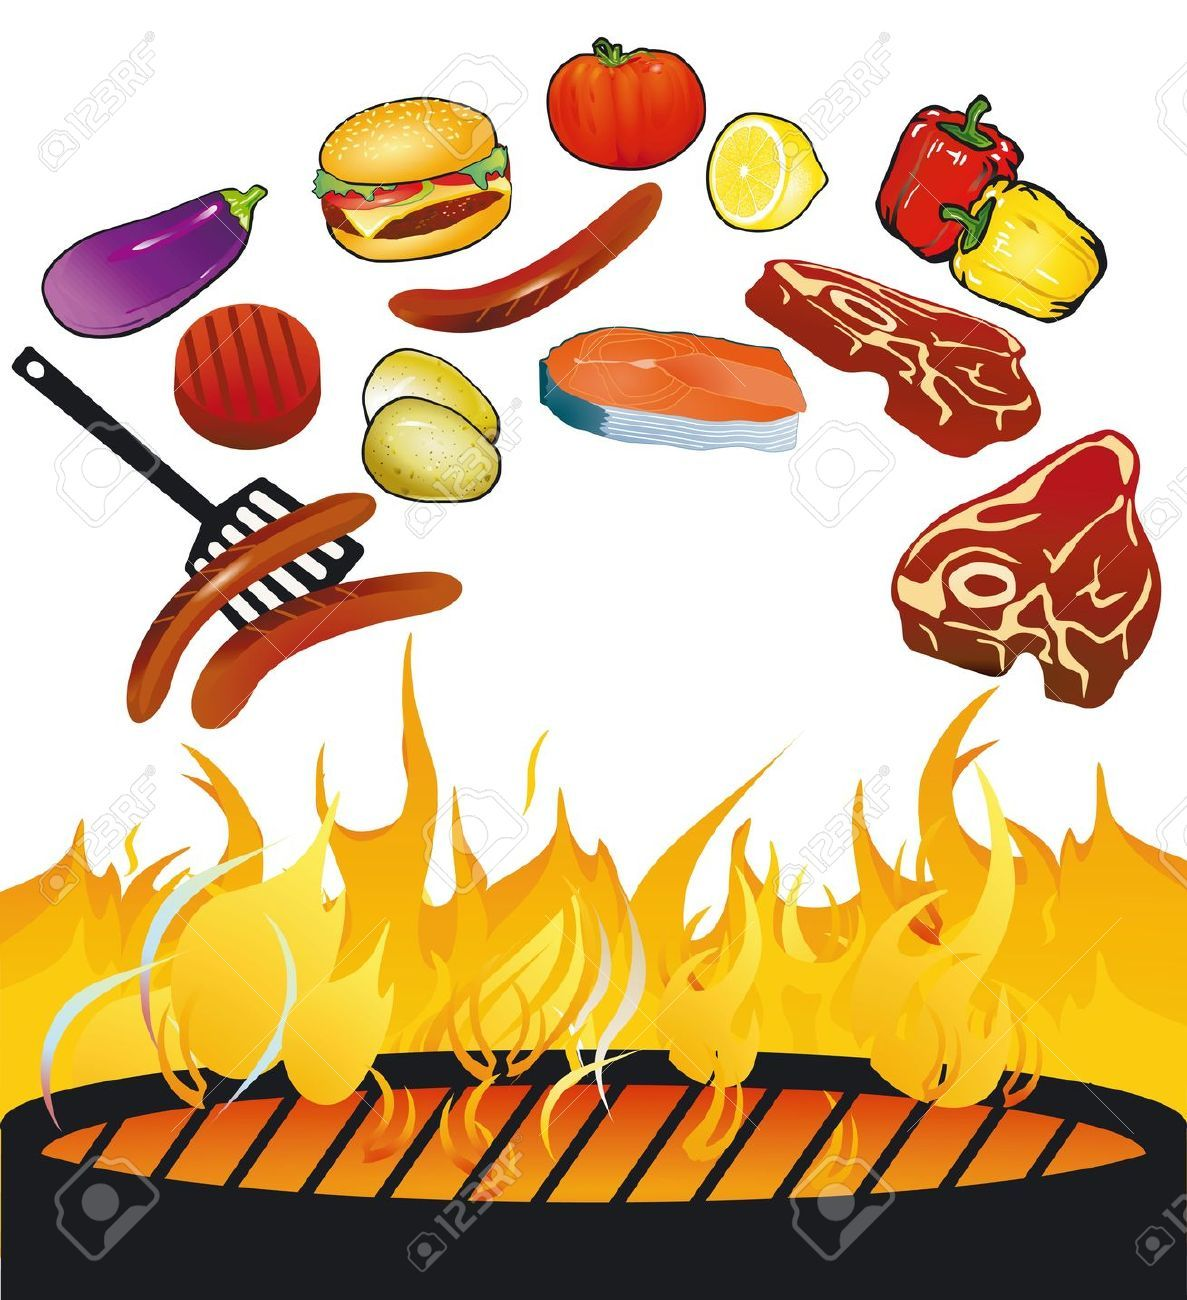 Bbq grill with fire clipart 2 » Clipart Portal.